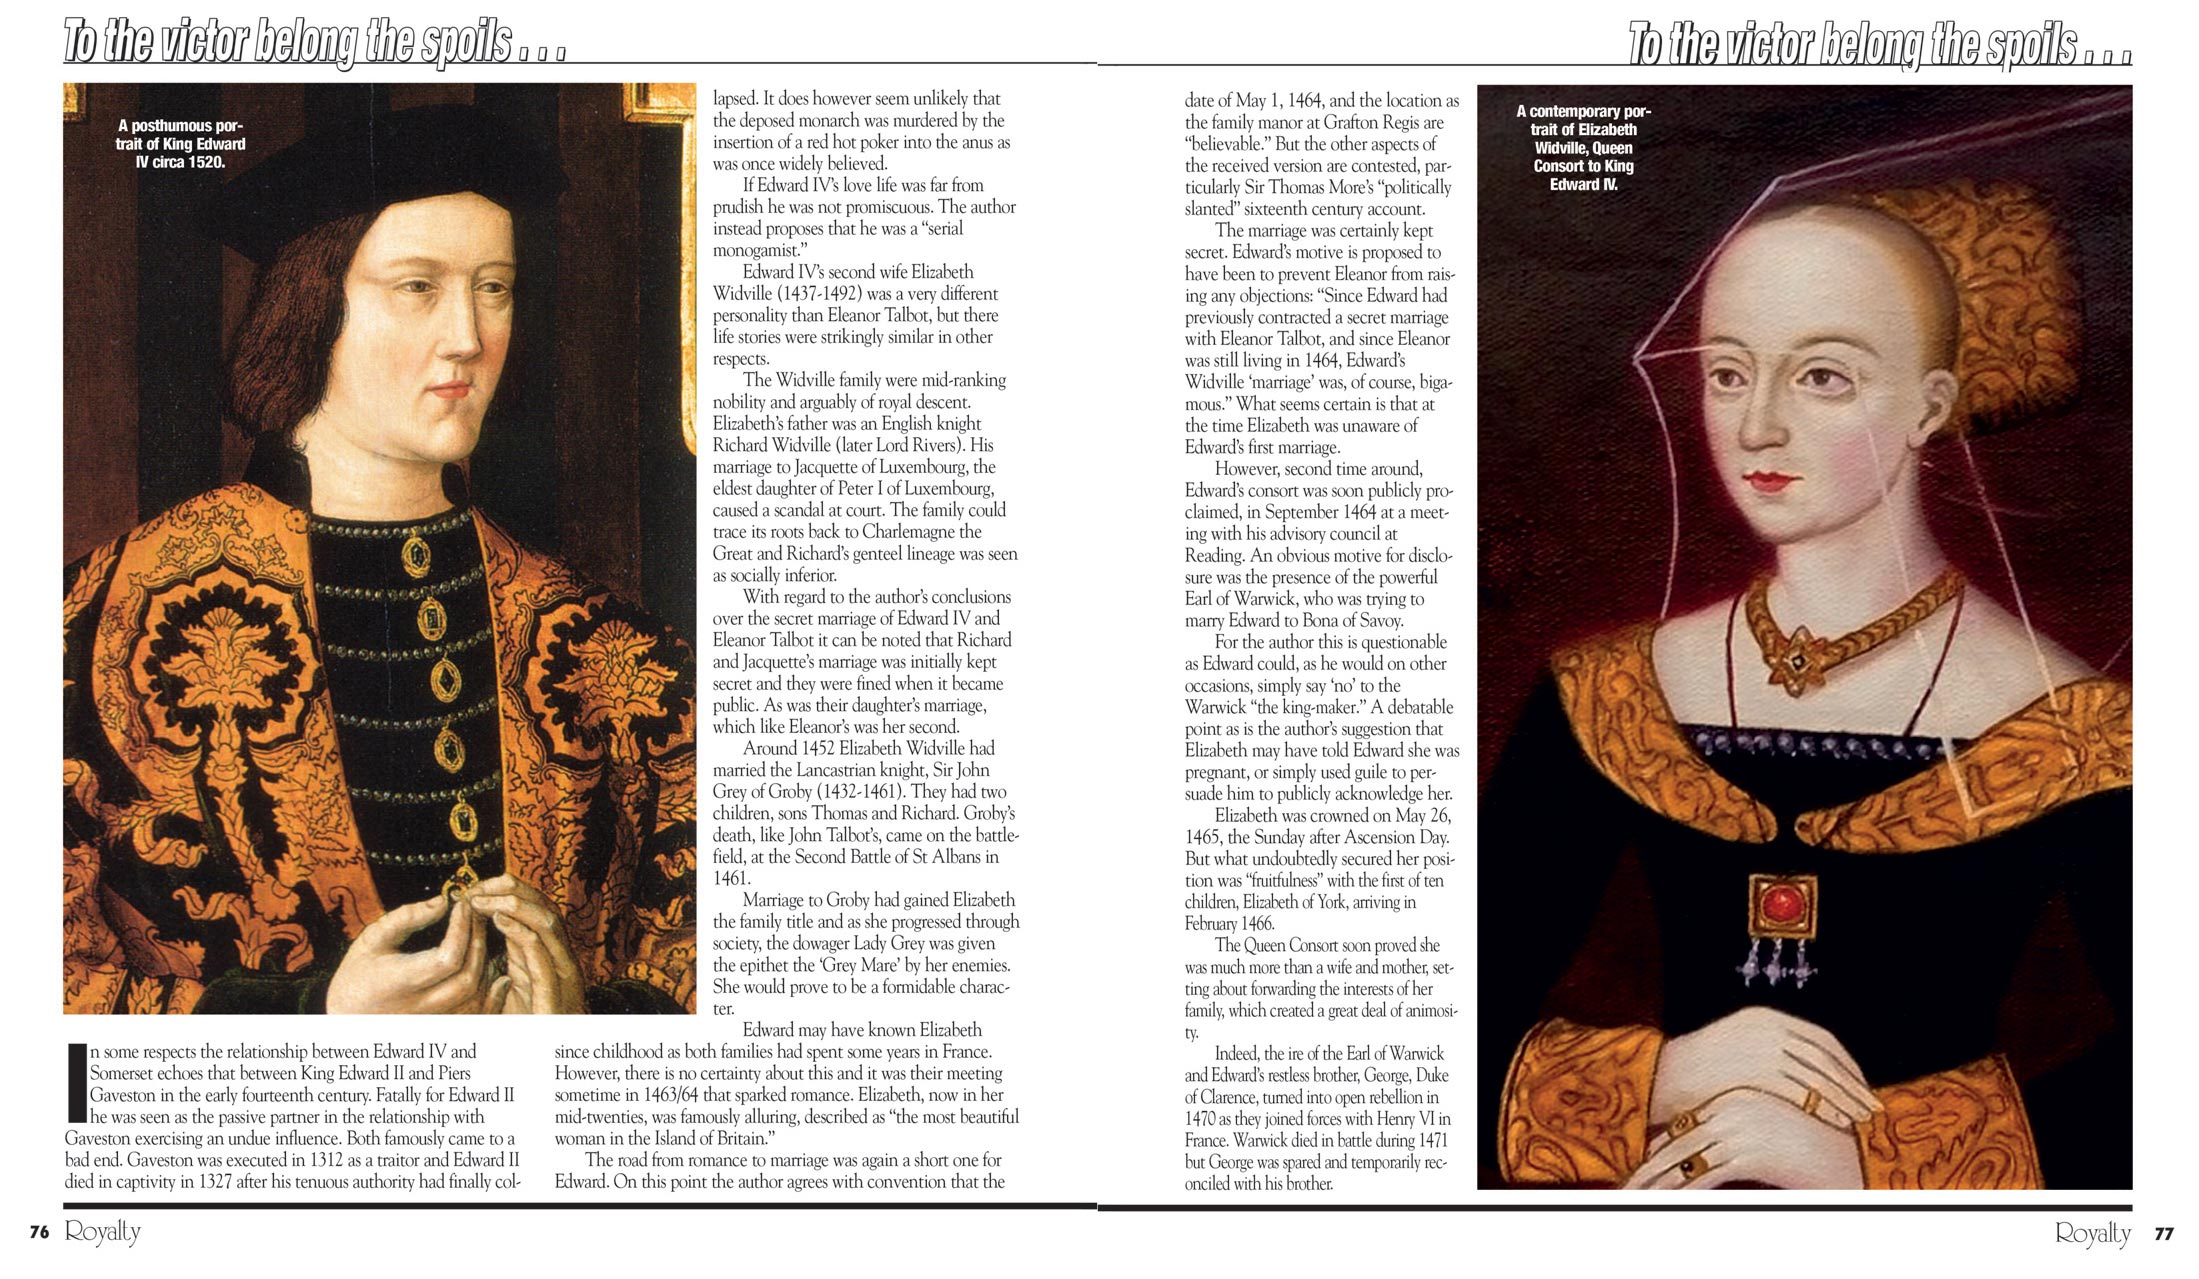 Extract from Royalty Magazine Volume 24/09.